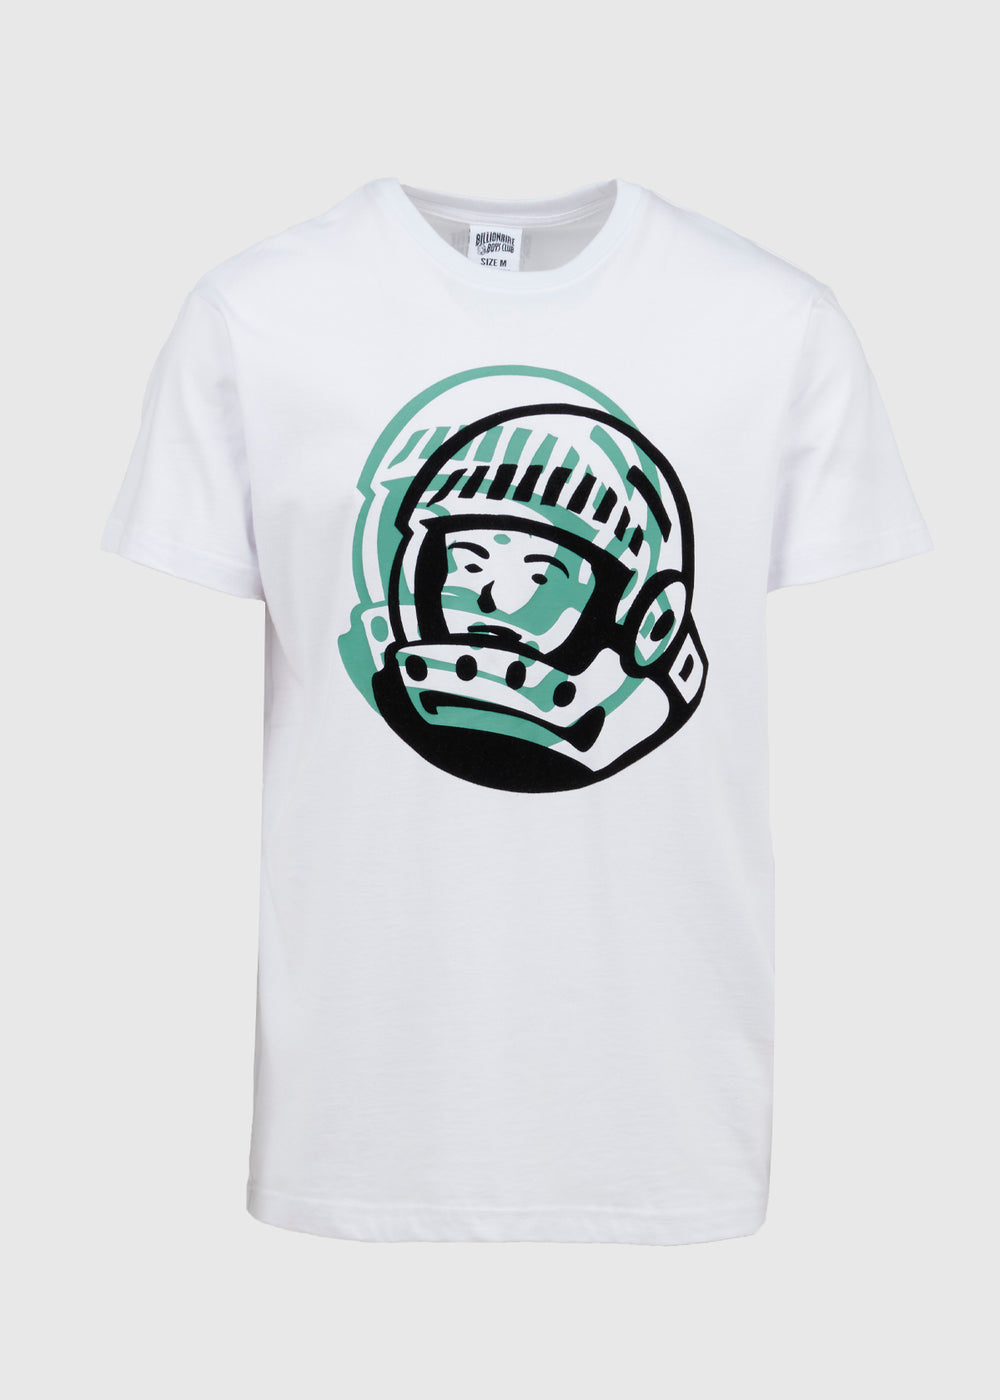 billionaire-boys-club-doubleed-ss-tee-891-7212-wht-wht-1